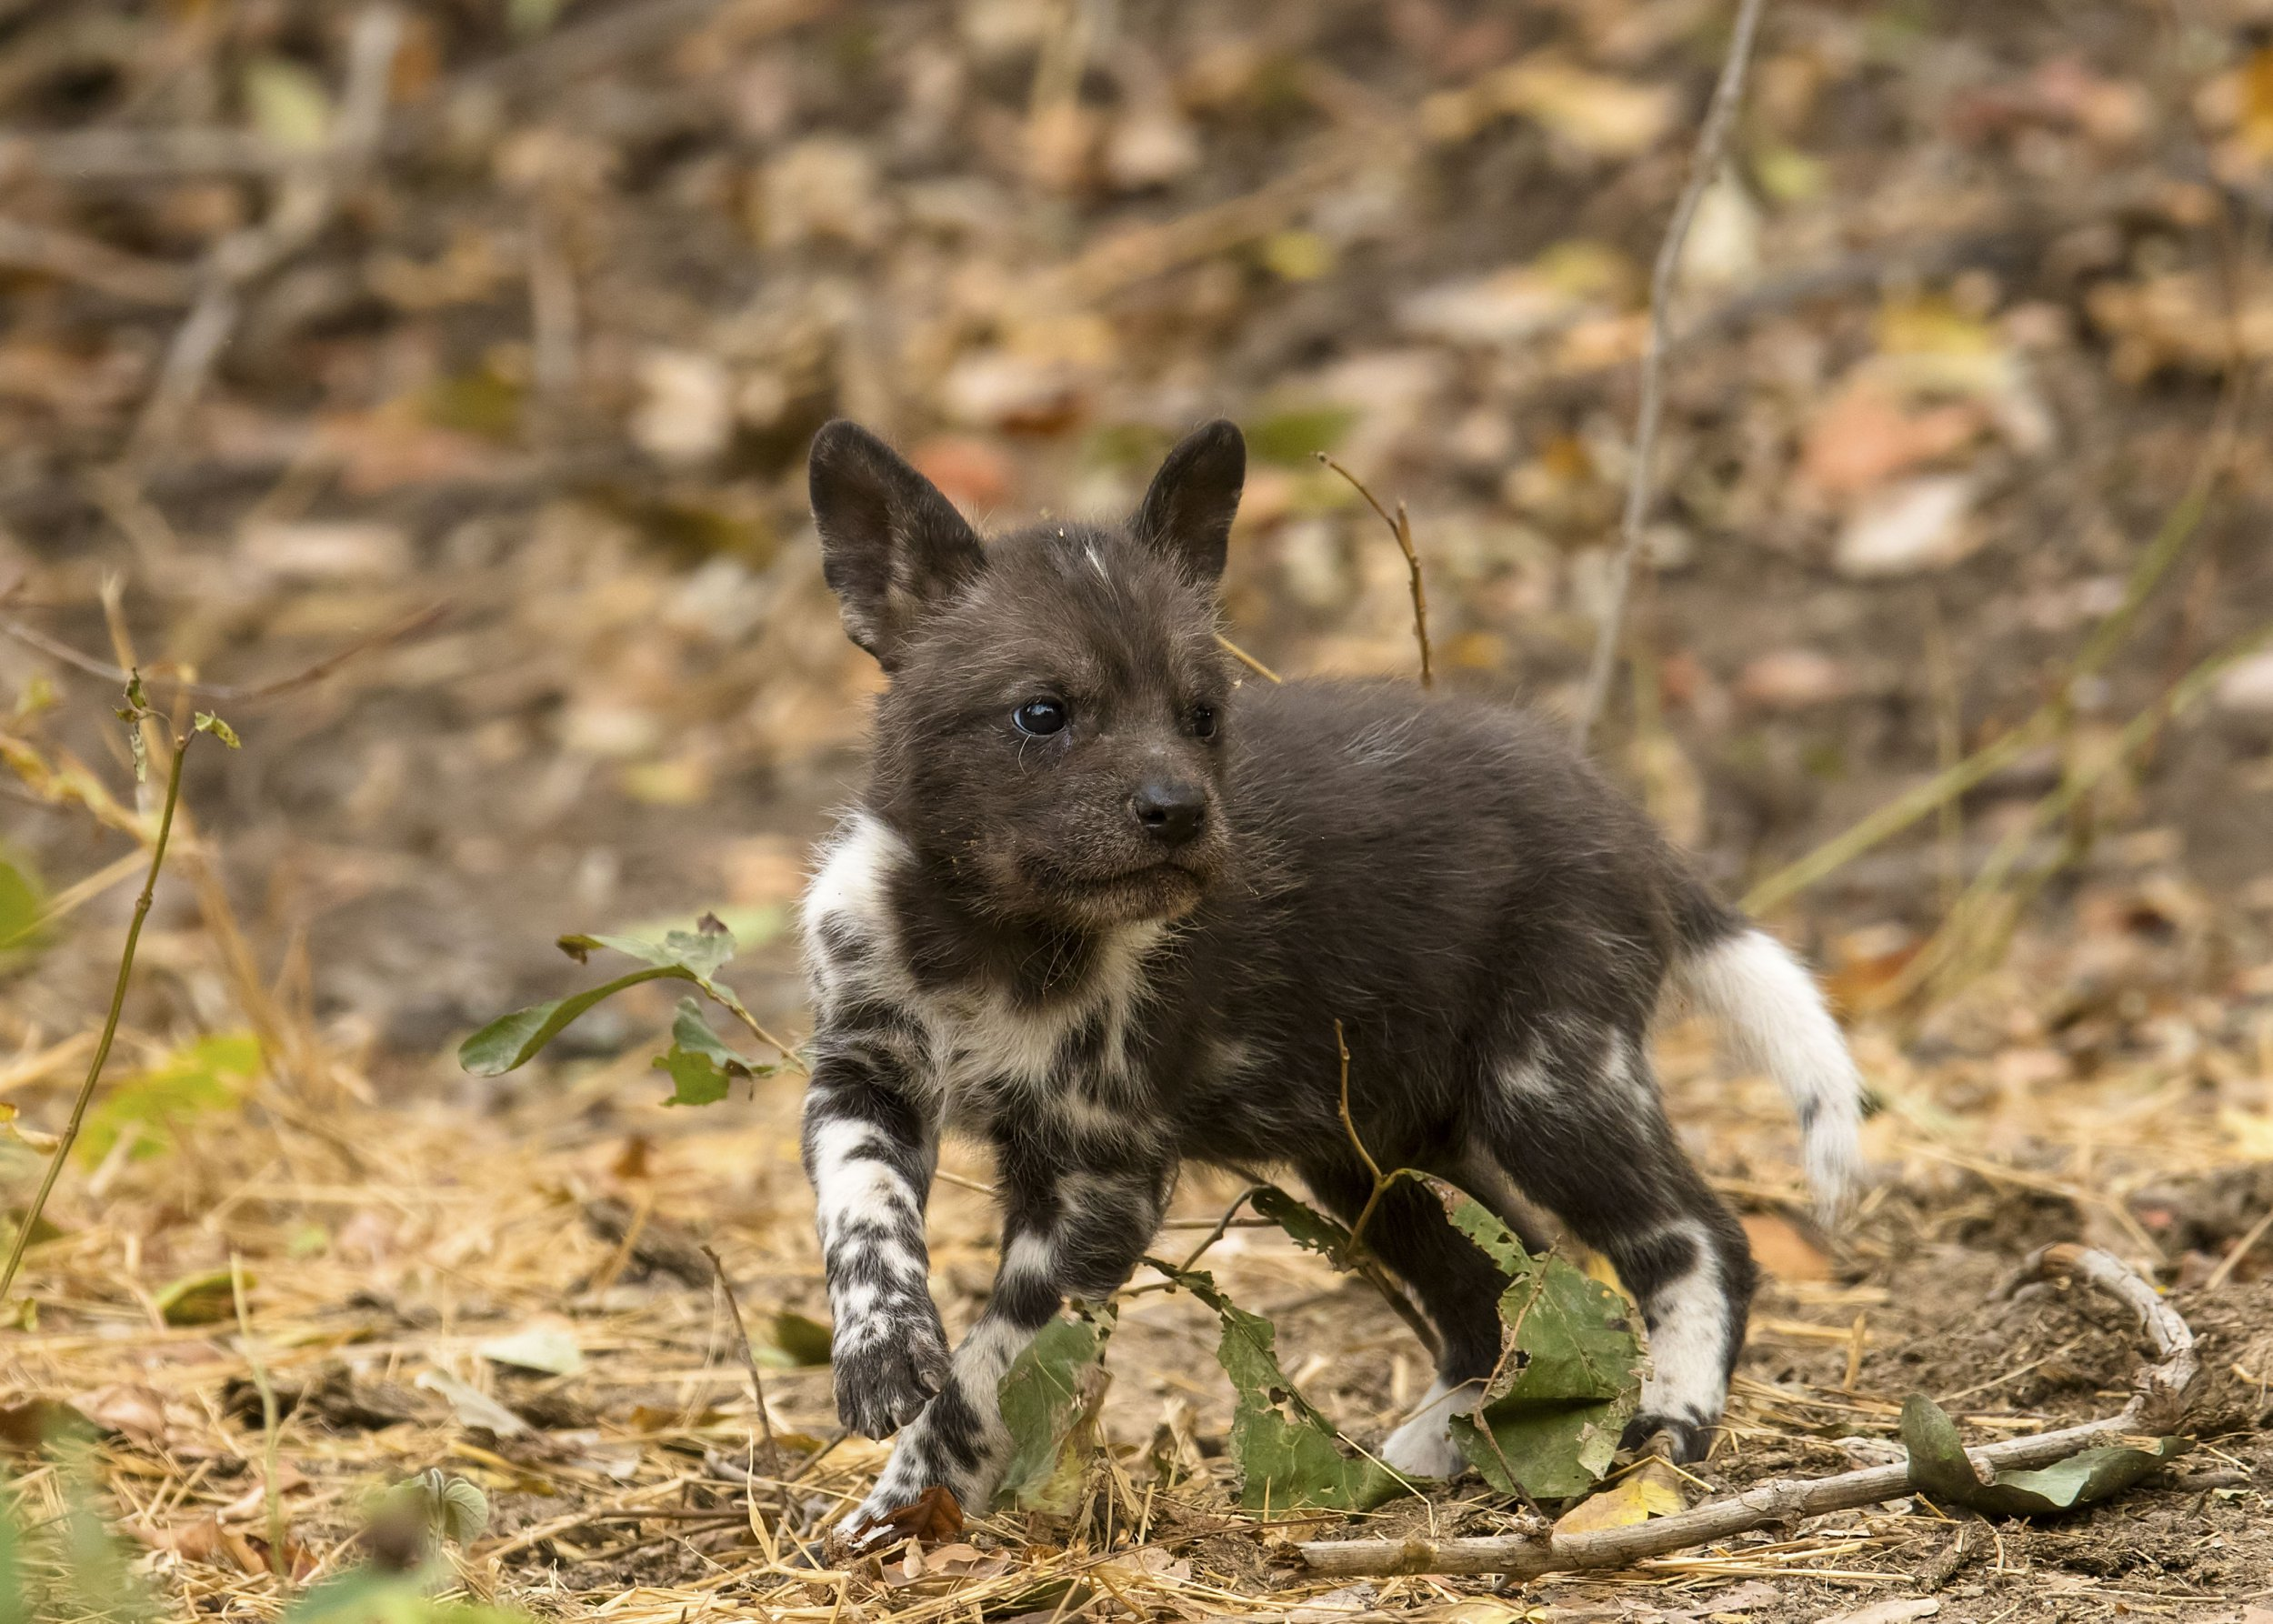 **PLEASE NOTE MANDATORY BYLINE** PIC BY Nicholas Dyer / CATERS NEWS (PICTURED a young pup)These rarely captured scenes show a pack of painted wolves the same African wild dogs set to feature this Sunday (2nd) on David Attenboroughs Dynasties hunting baboons. The incredible photographs show how the animals, Africas most efficient predator, have changed their diet and began to hunt baboons for the first time something never before witnessed by experts. Wildlife photographer Nicholas Dyer has been following the animals through the remote Mana Pools of Zimbabwe on foot for the last six years. His images show two packs hunting baboons on the banks of the Zambezi river, reaching speeds of 46mph to bring down their prey.